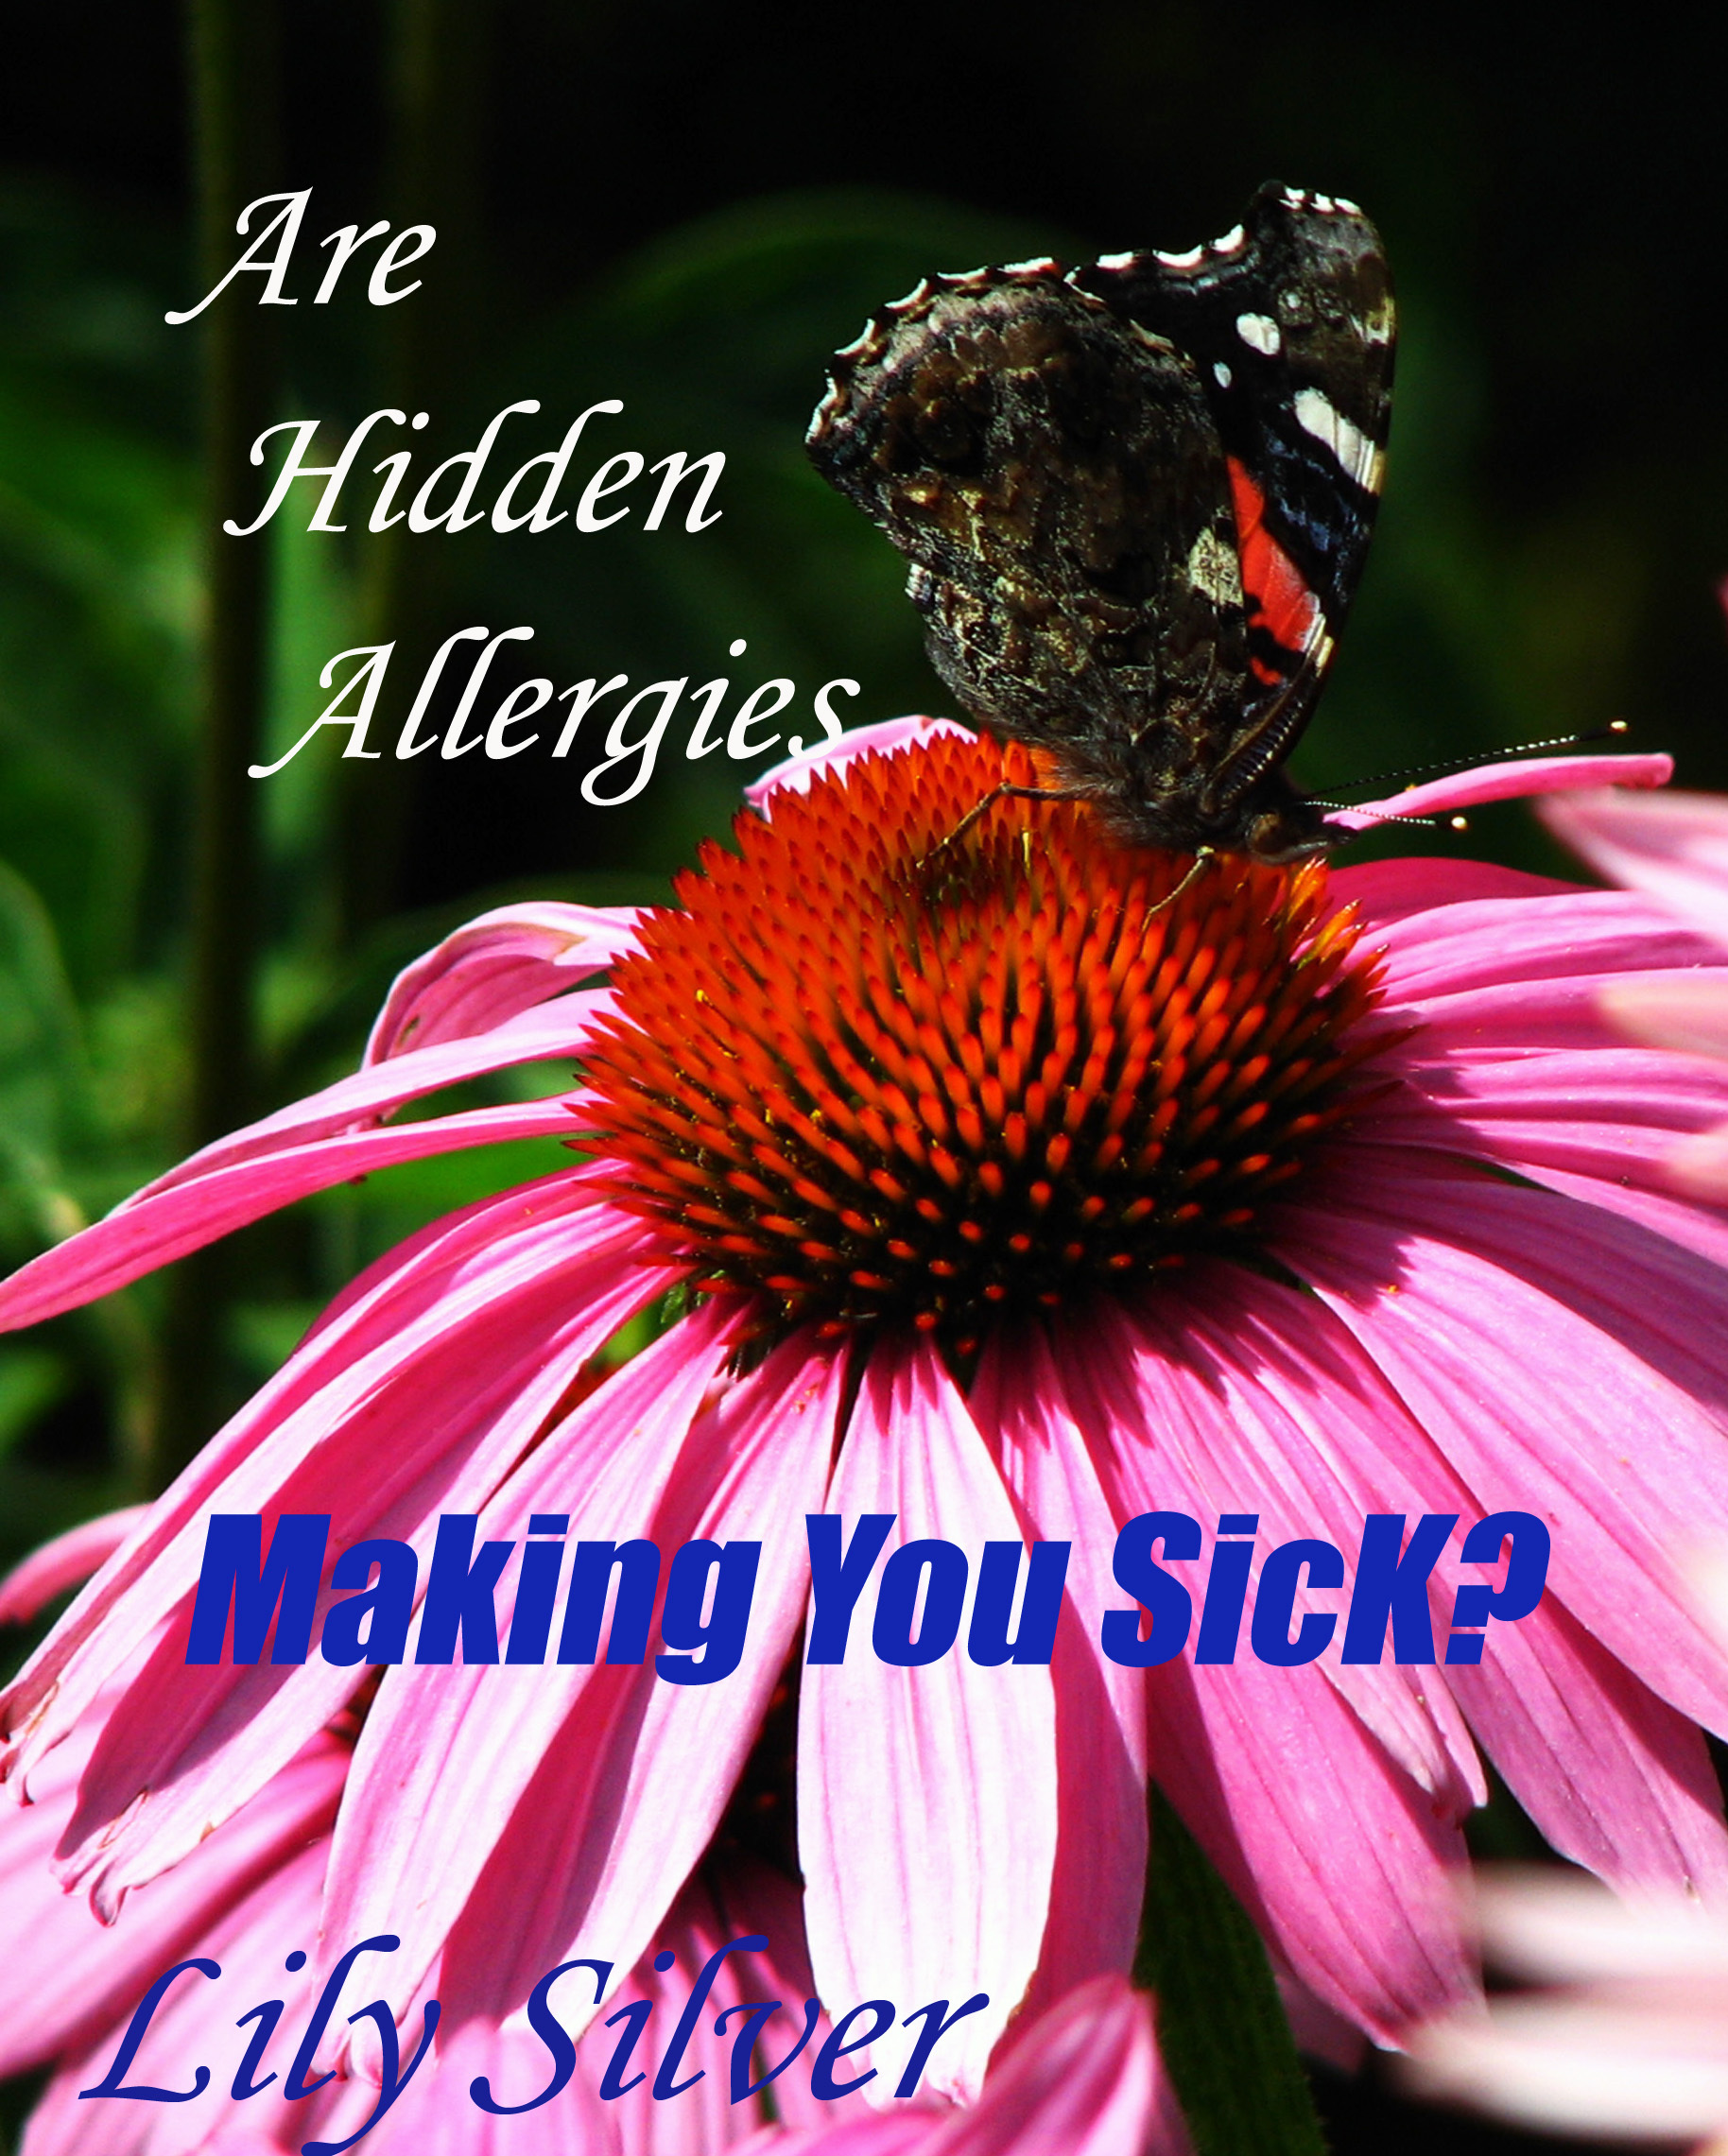 Are Hidden Allergies Making You Sick?